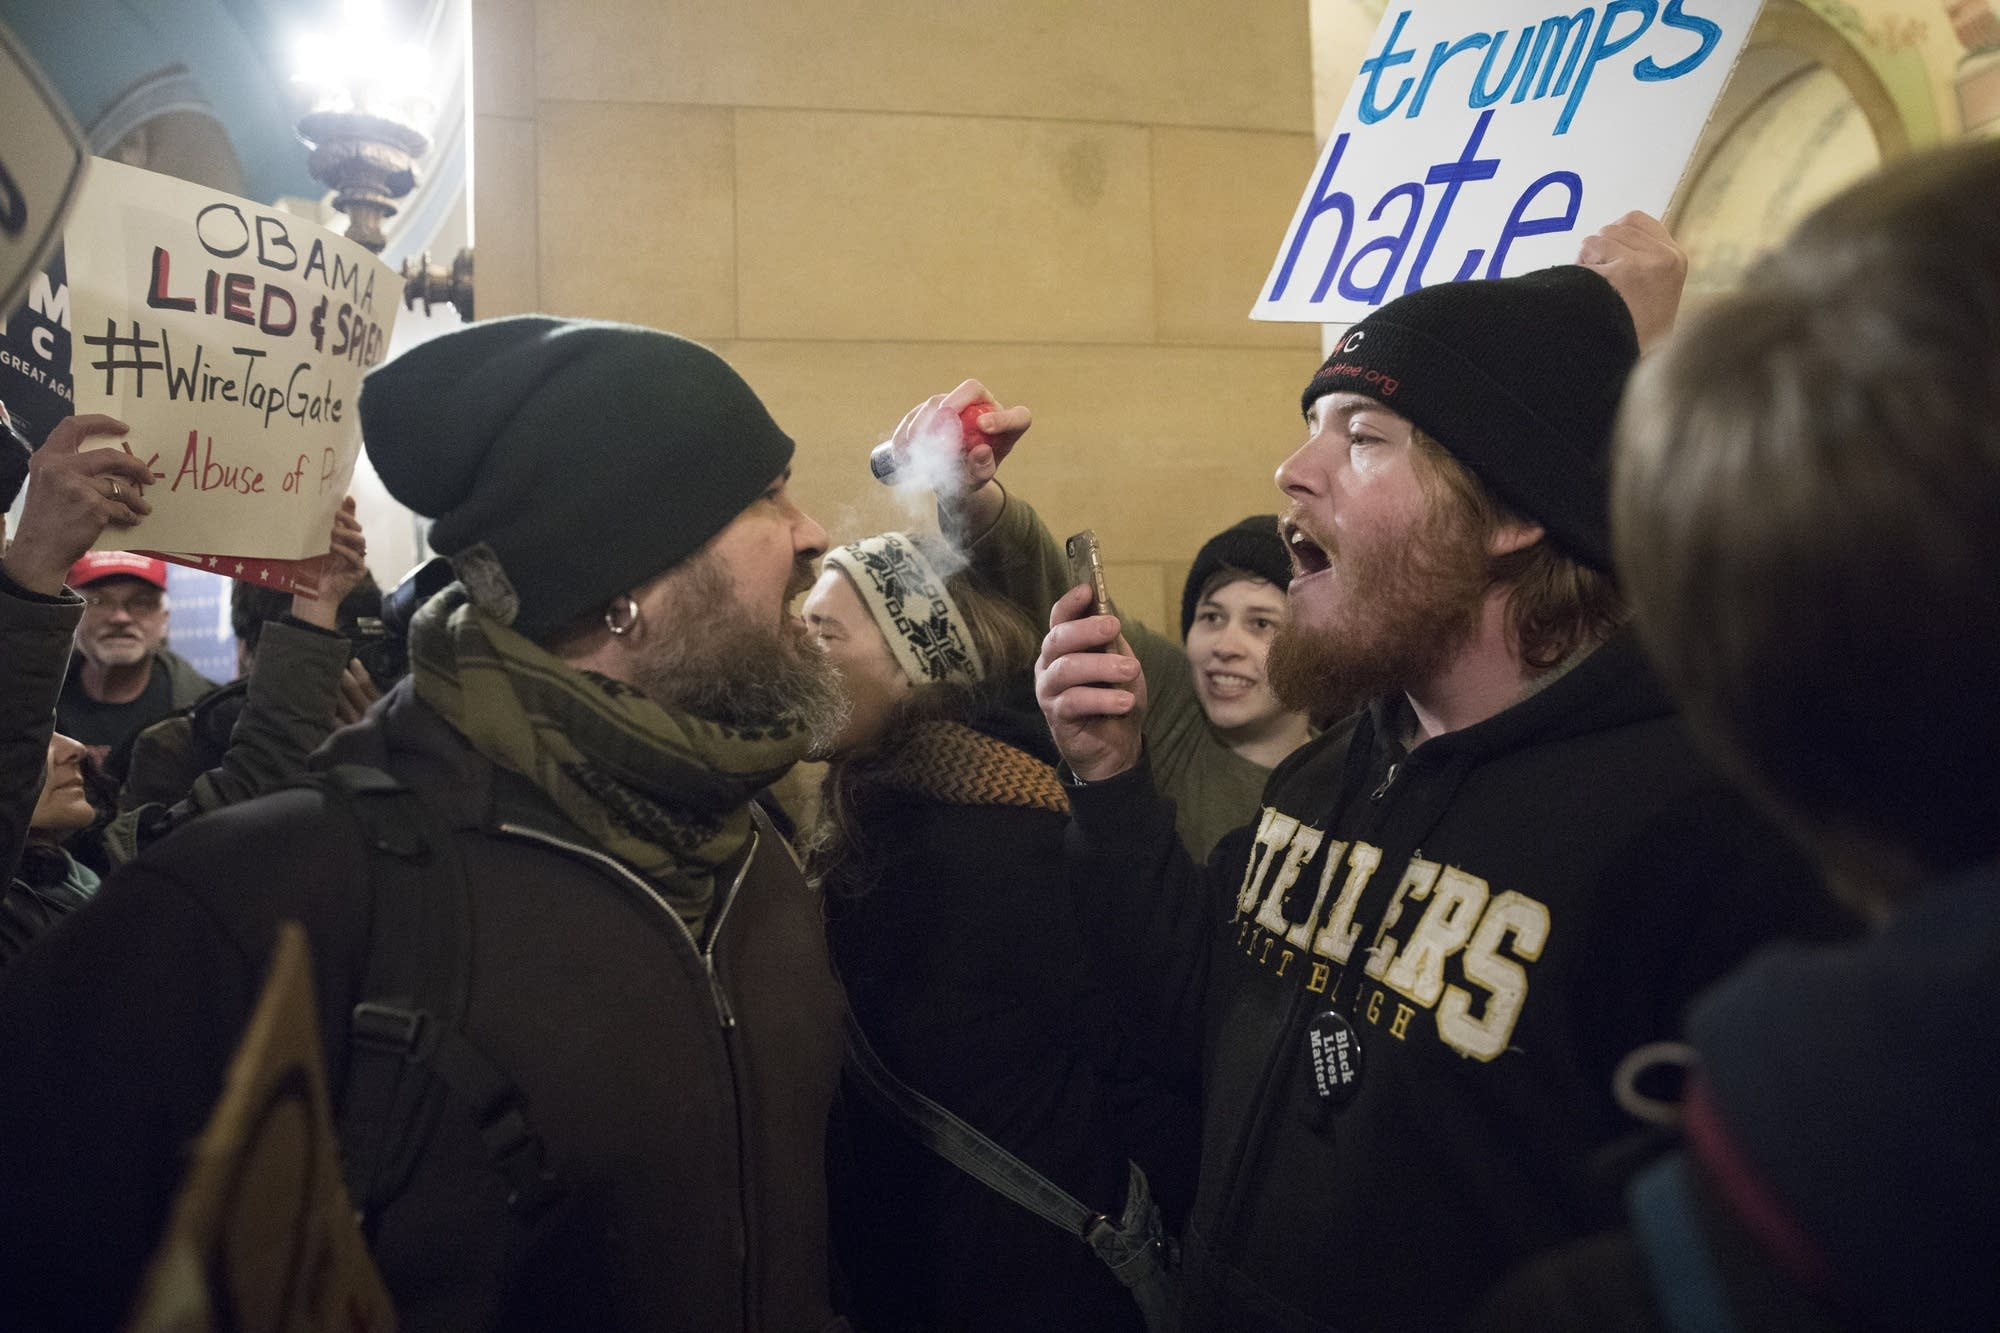 Counter-protesters blew air horns in the face of Trump supporters.